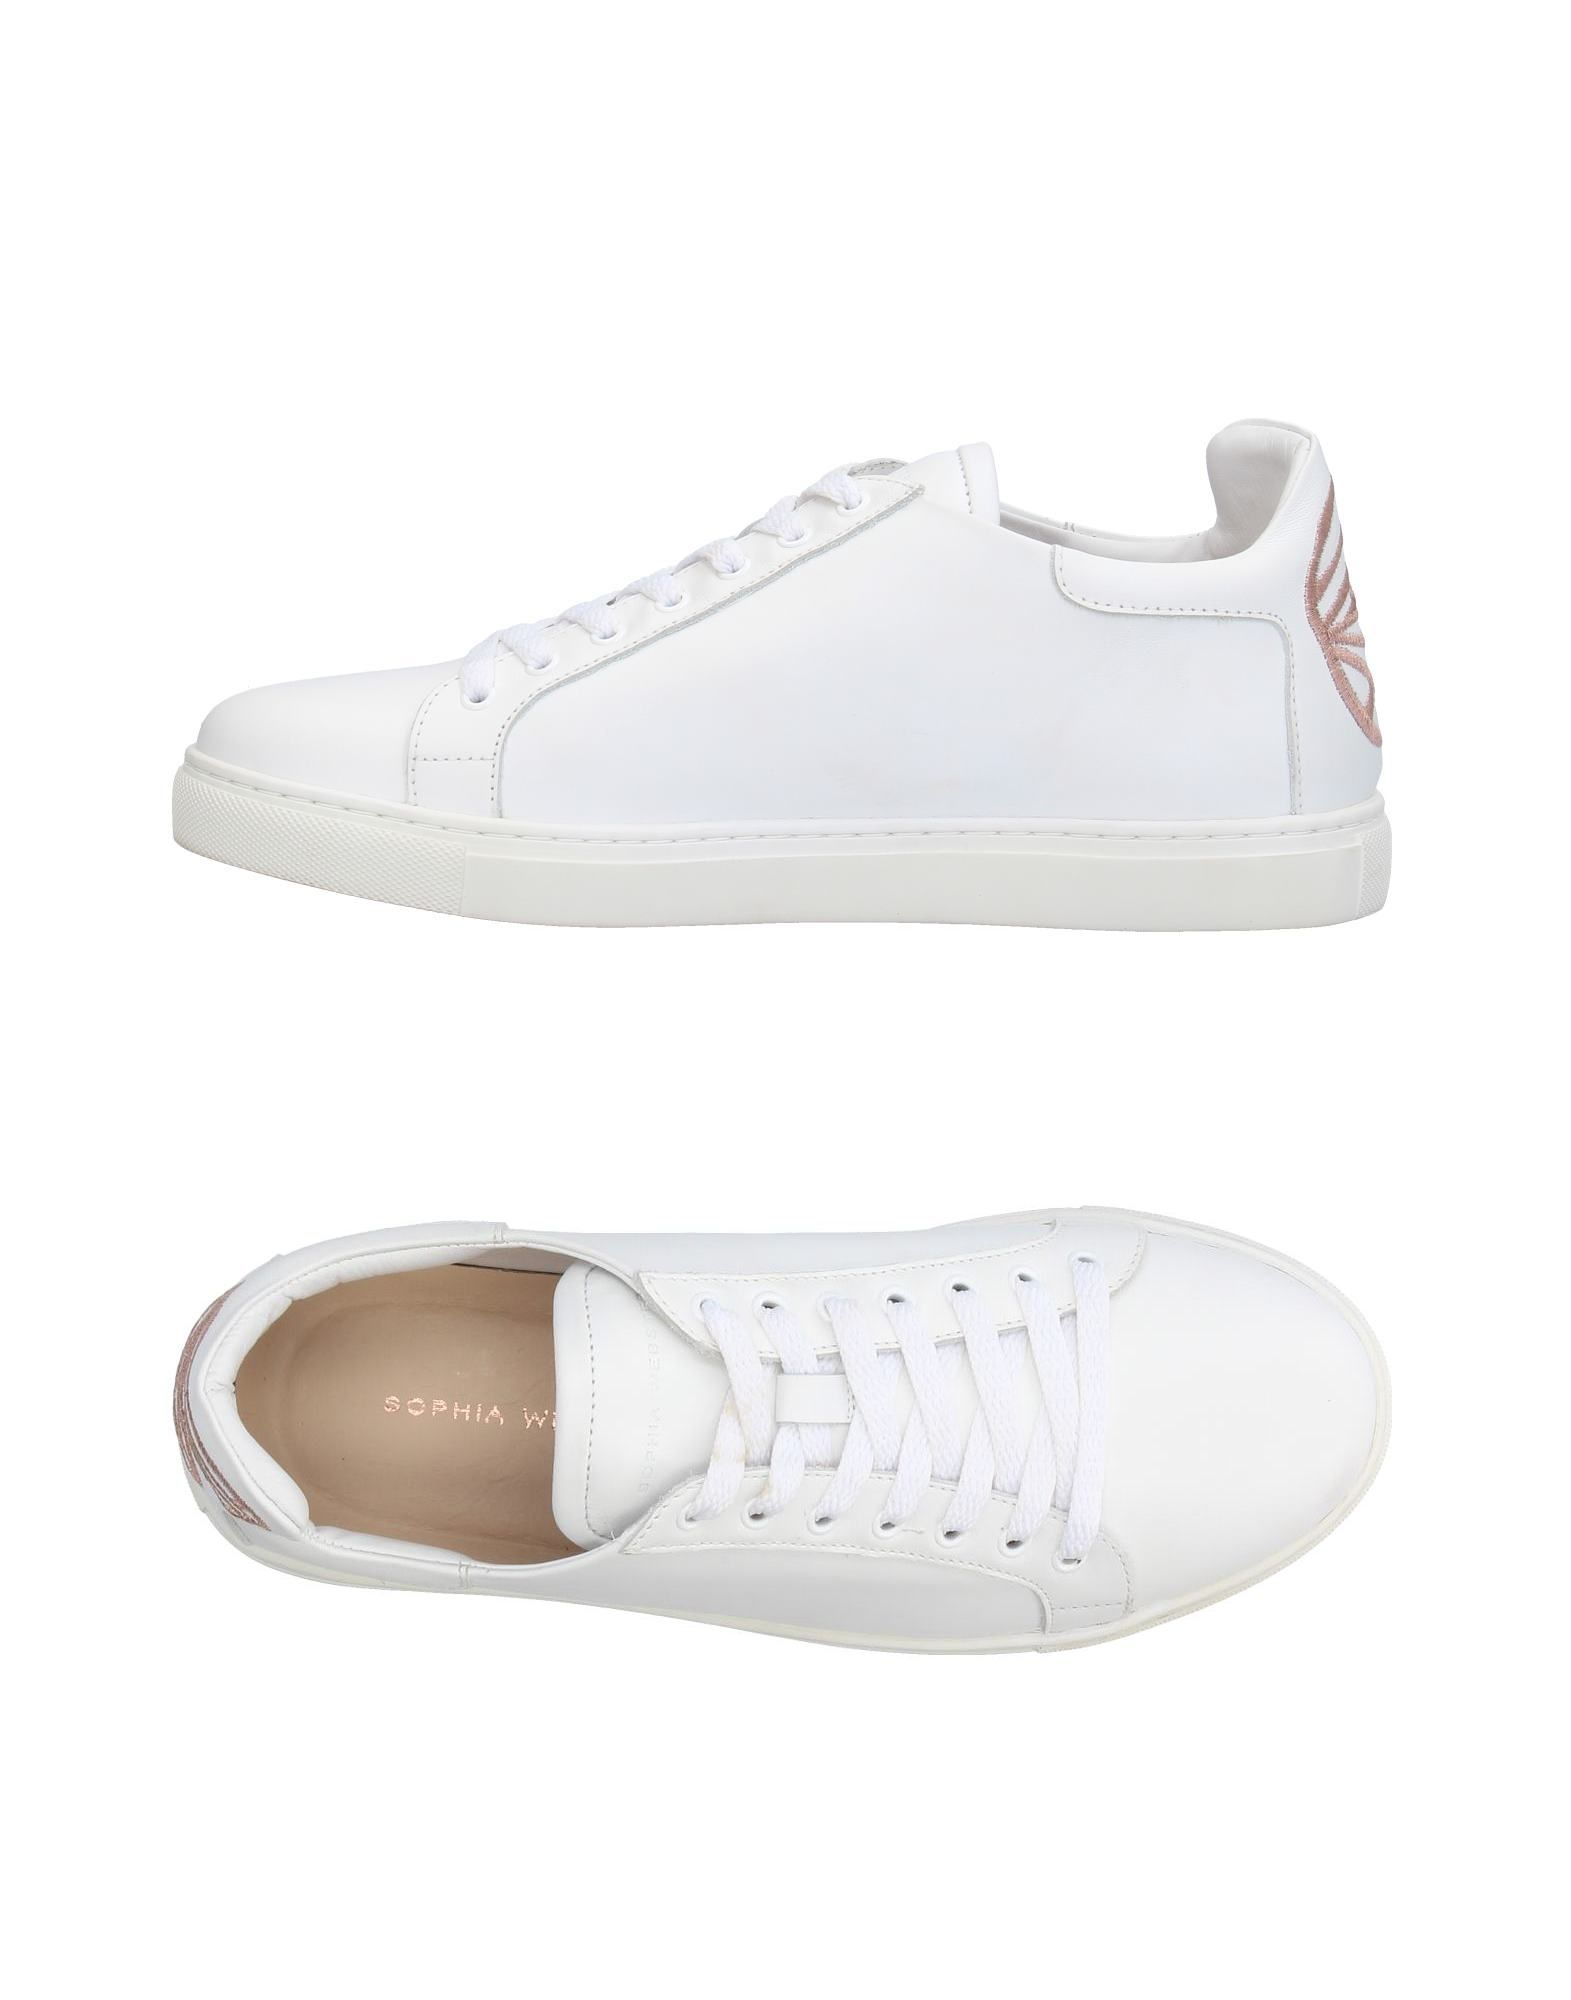 Sneakers Sophia Webster Femme - Sneakers Sophia Webster sur